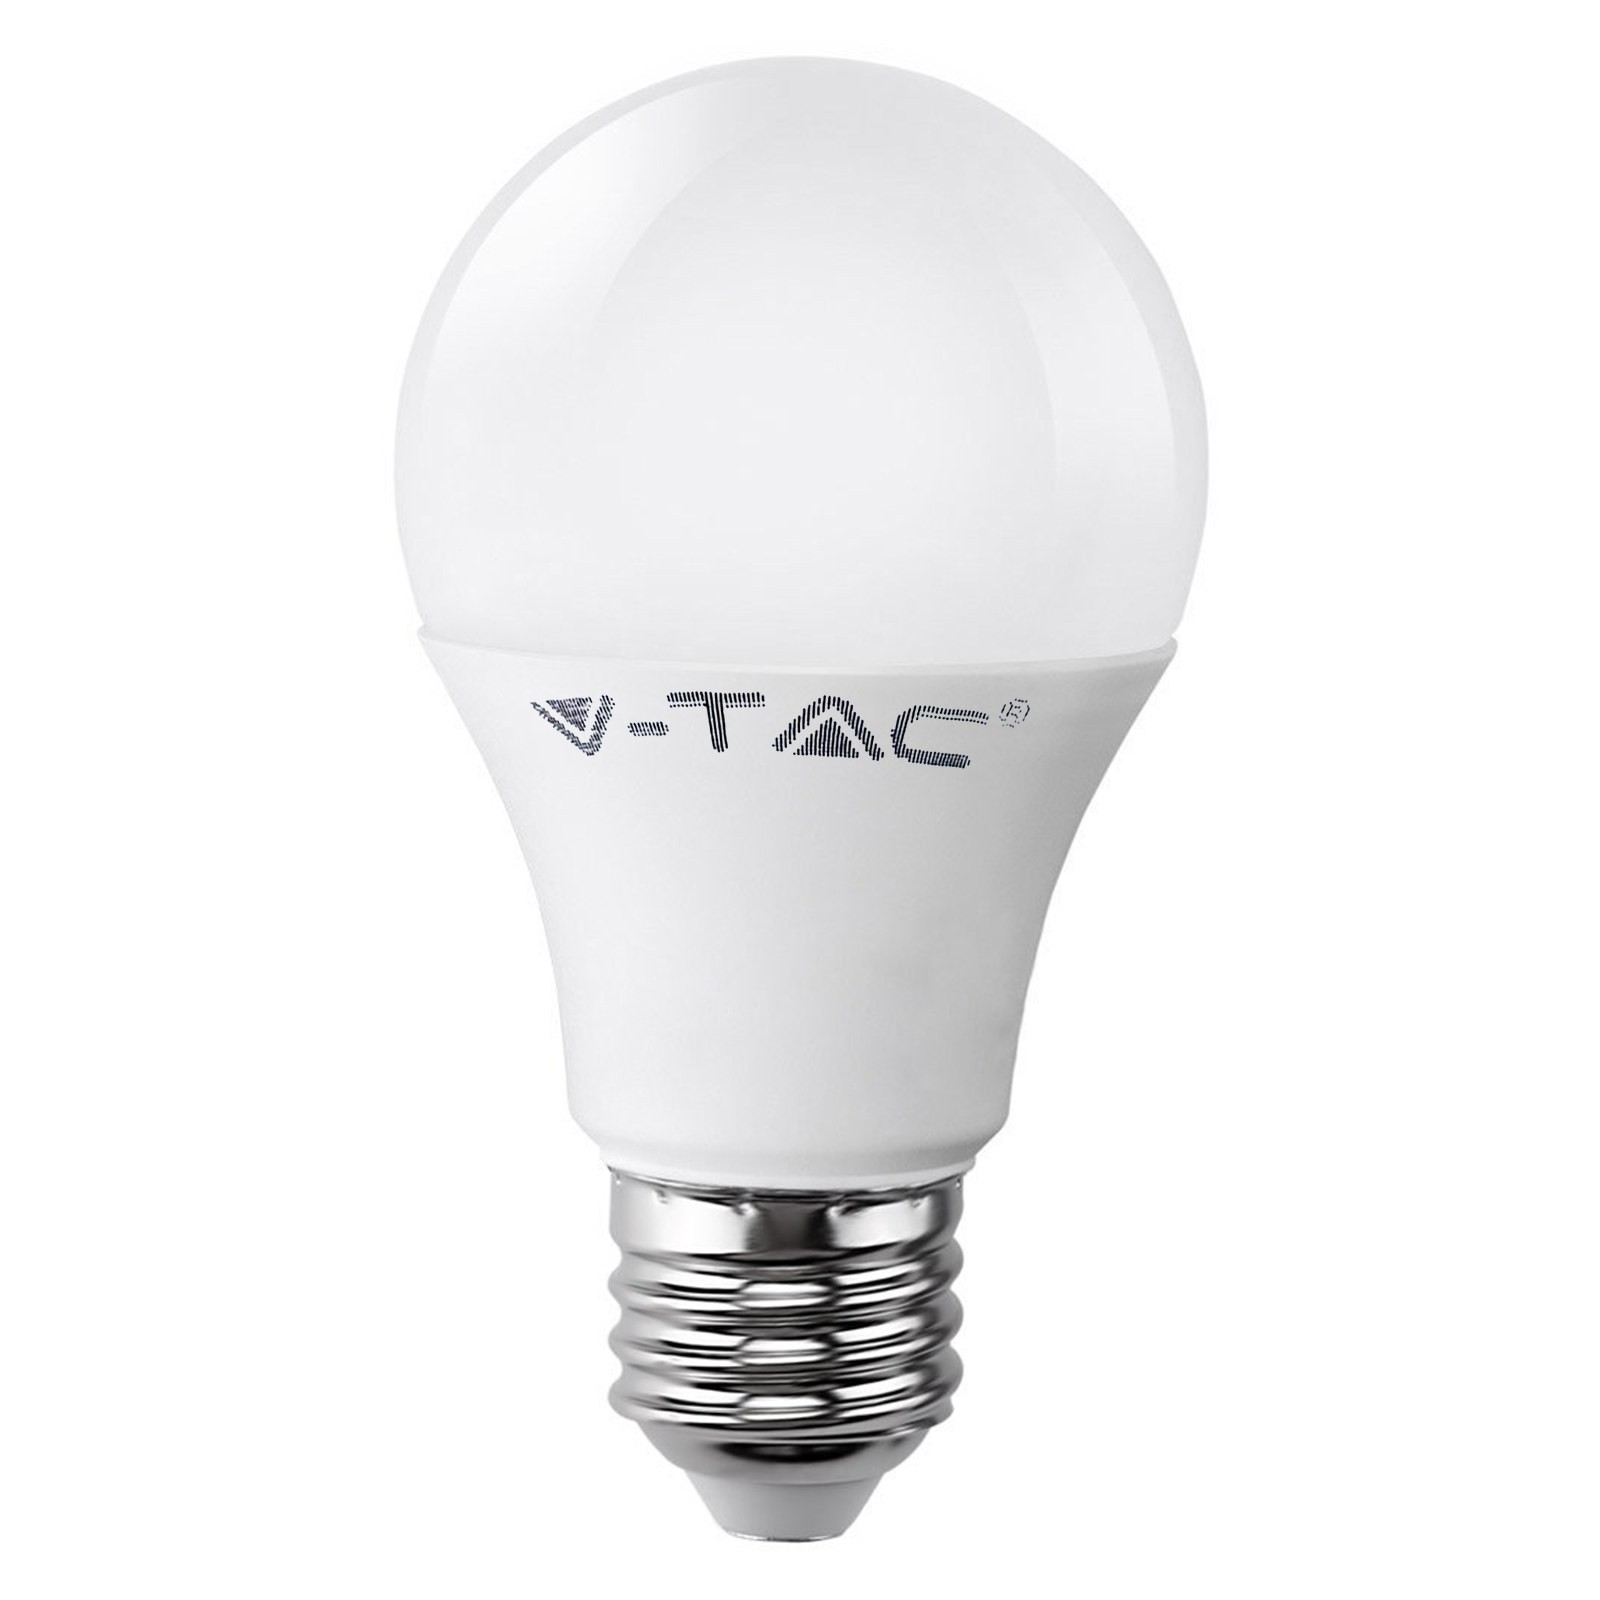 Lampadina led e2712w v tac vt 1864 vendita illuminazione for Lampadina e27 led